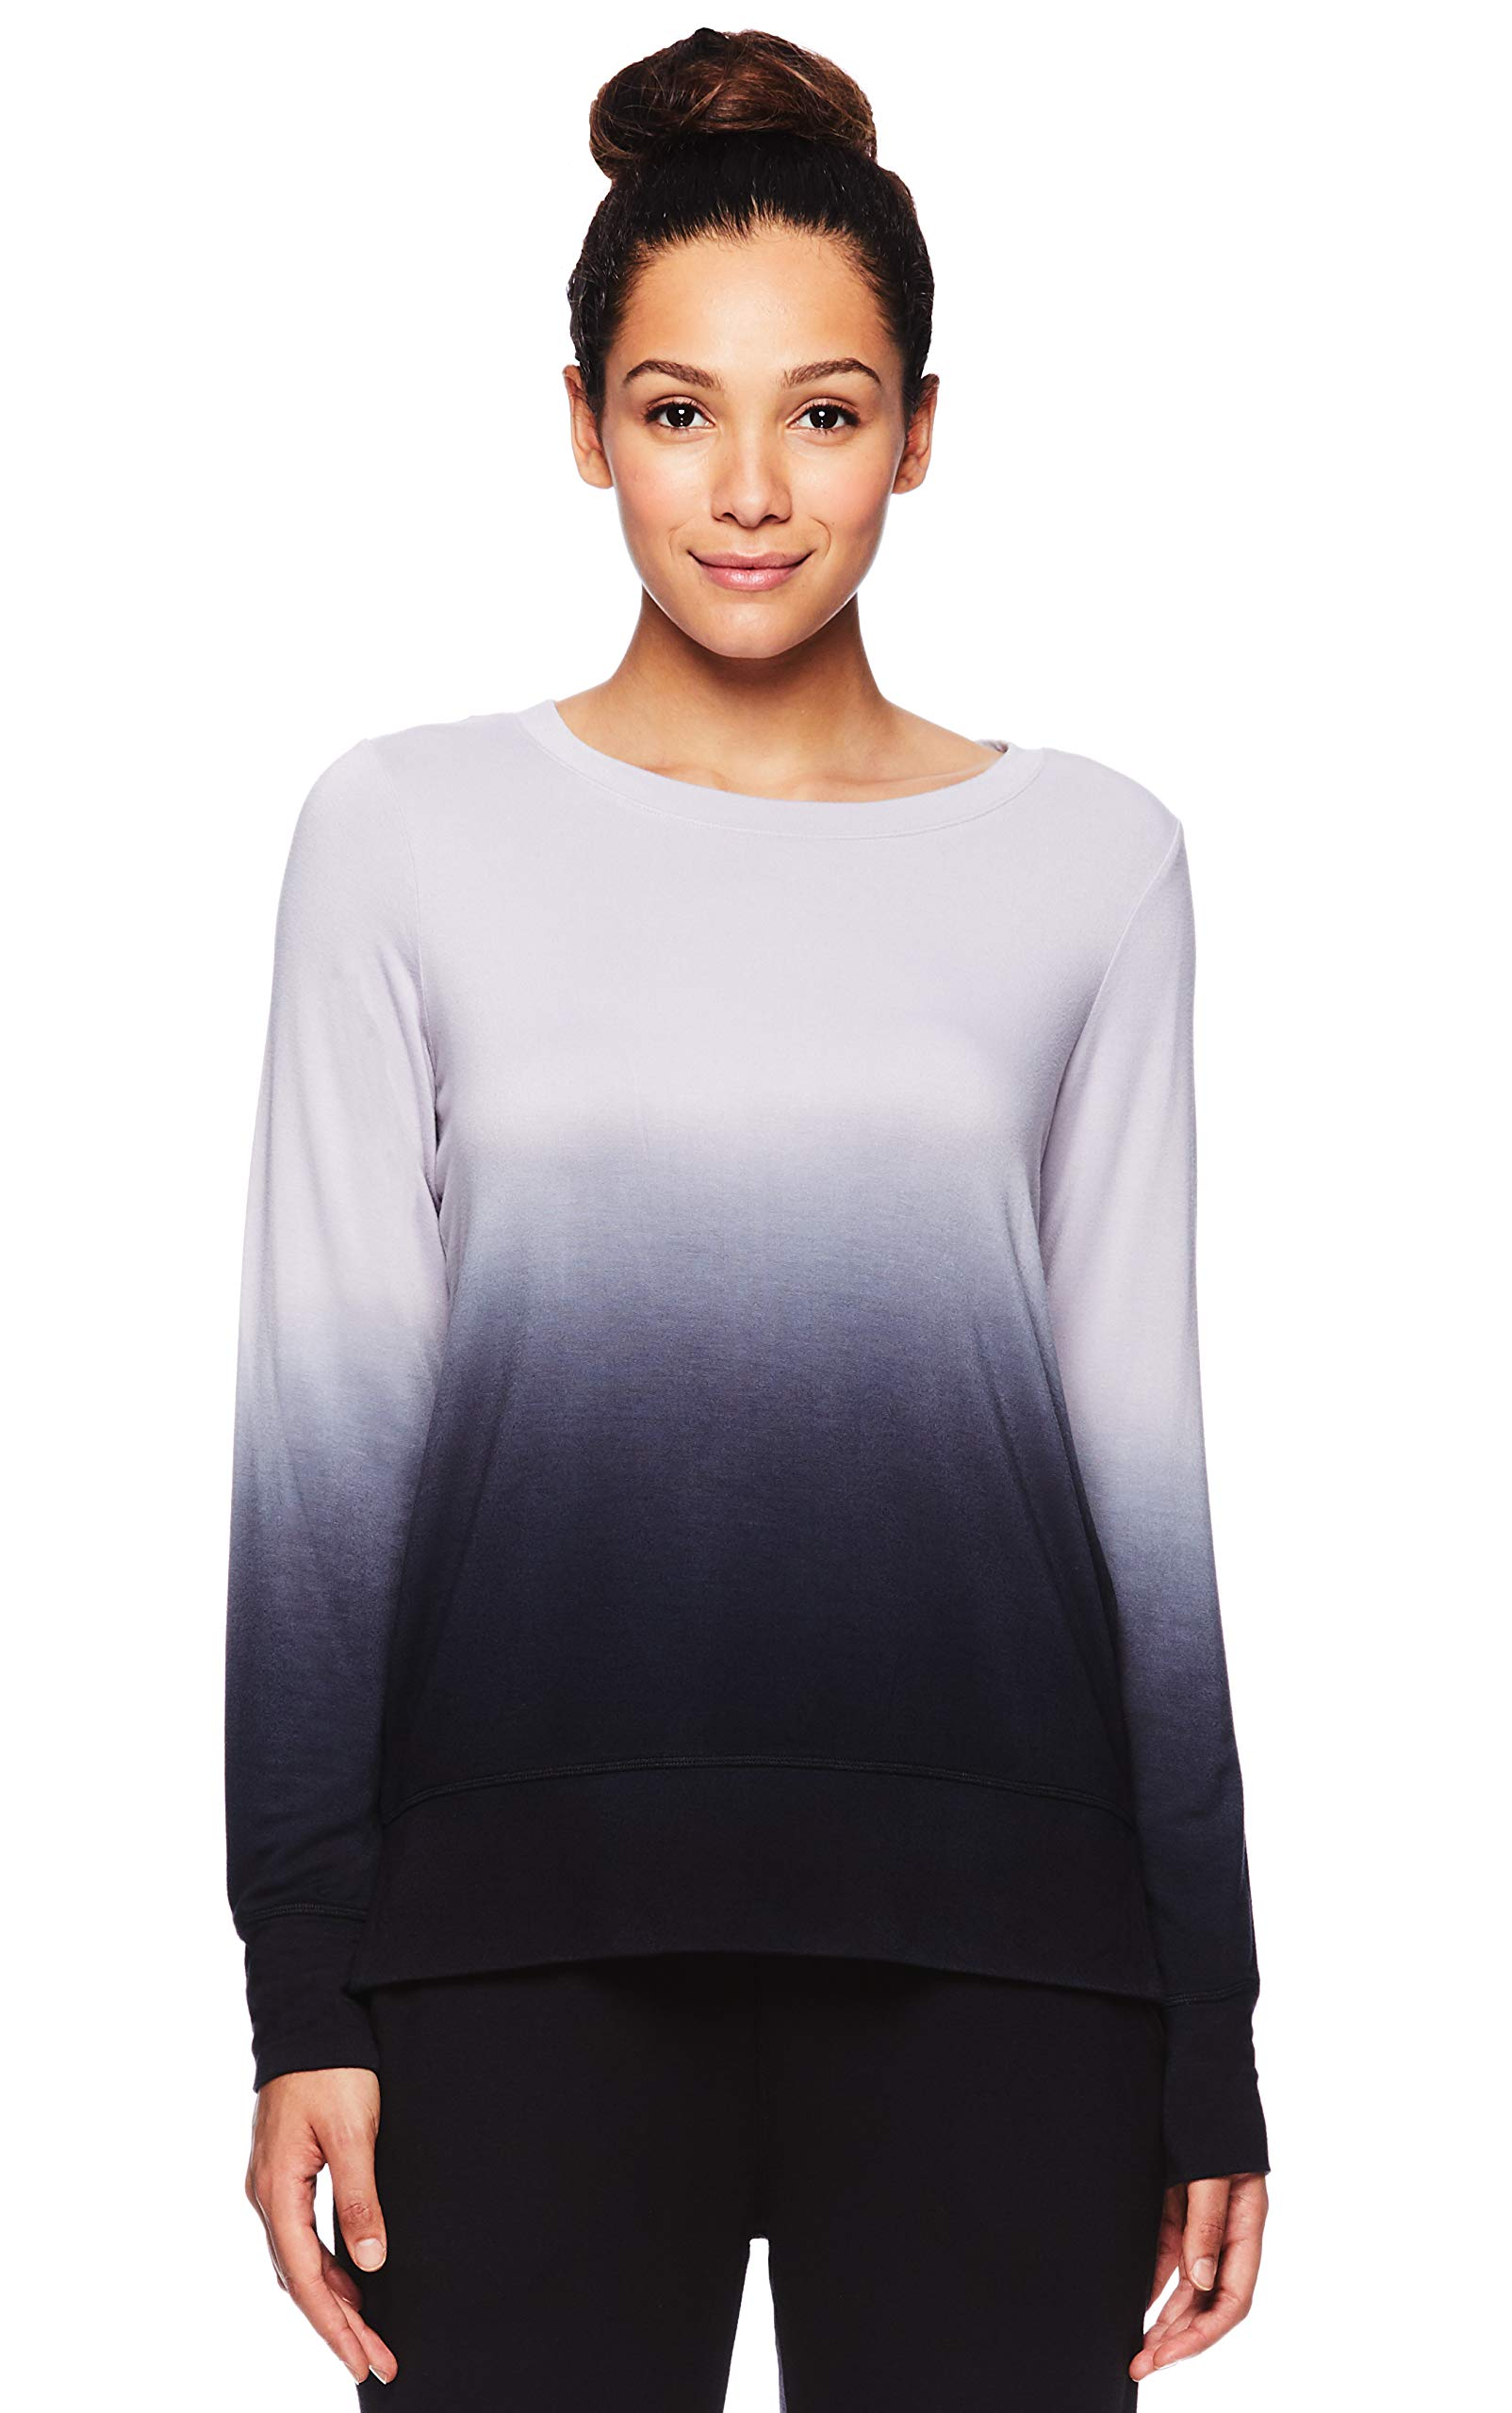 Gaiam Women's Dip Dye Pullover Sweatshirt - Lightweight Long Sleeve Yoga Sweater - Raindrops, Small by Gaiam